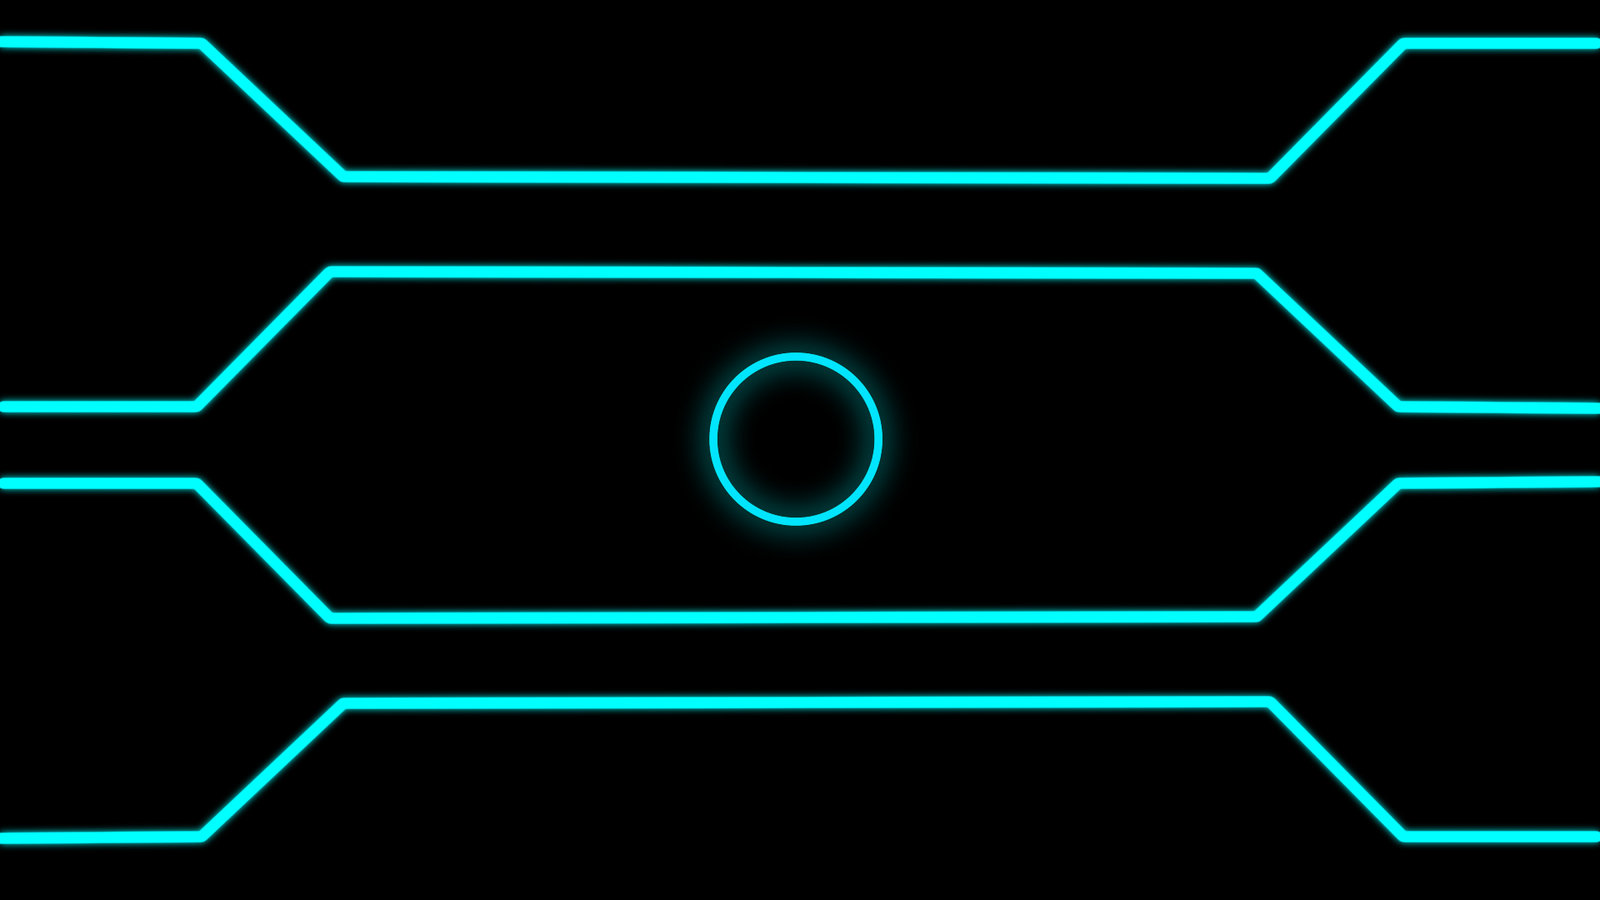 tron the grid wallpaper - photo #11